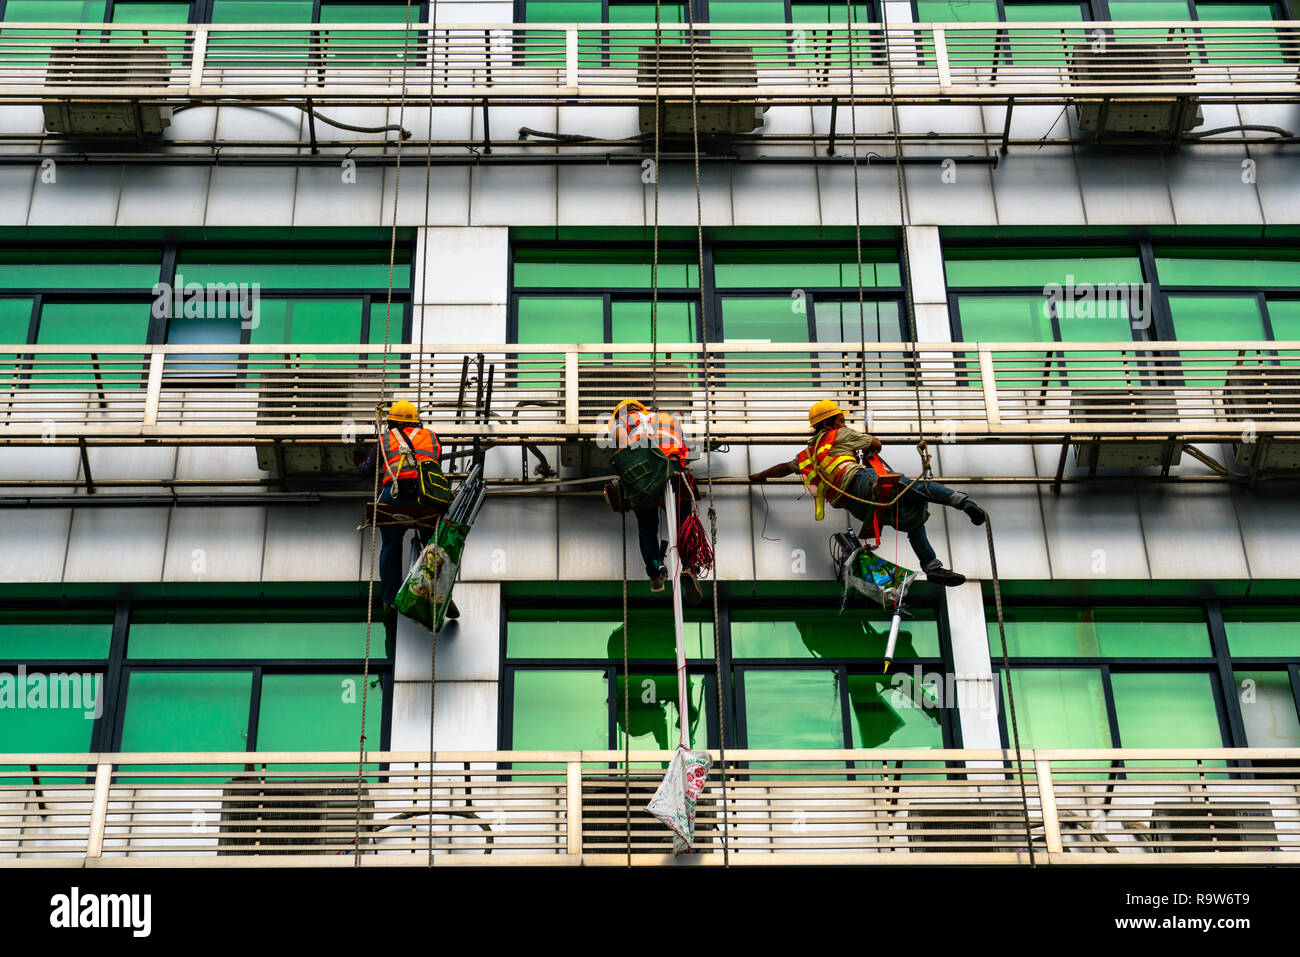 Occupation: repairmen suspended by cables at building exterior in Shenzhen, China Stock Photo